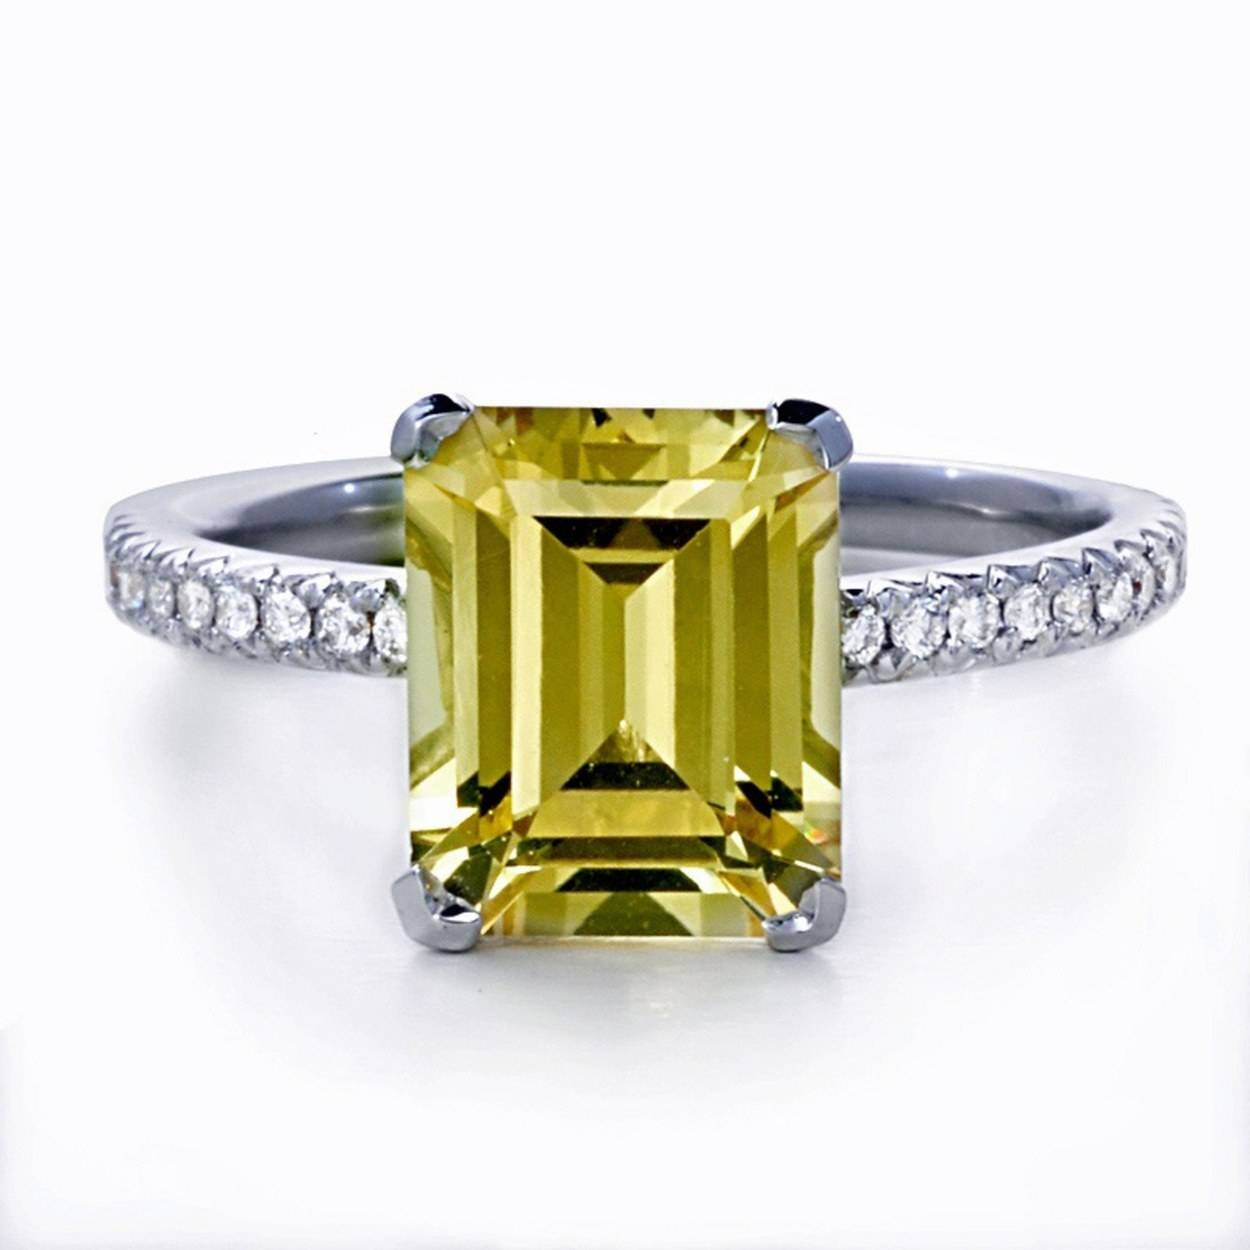 62 Diamond Engagement Rings Under $5,000 | Glamour Within Emerald Cut Engagement Rings Under (View 11 of 15)